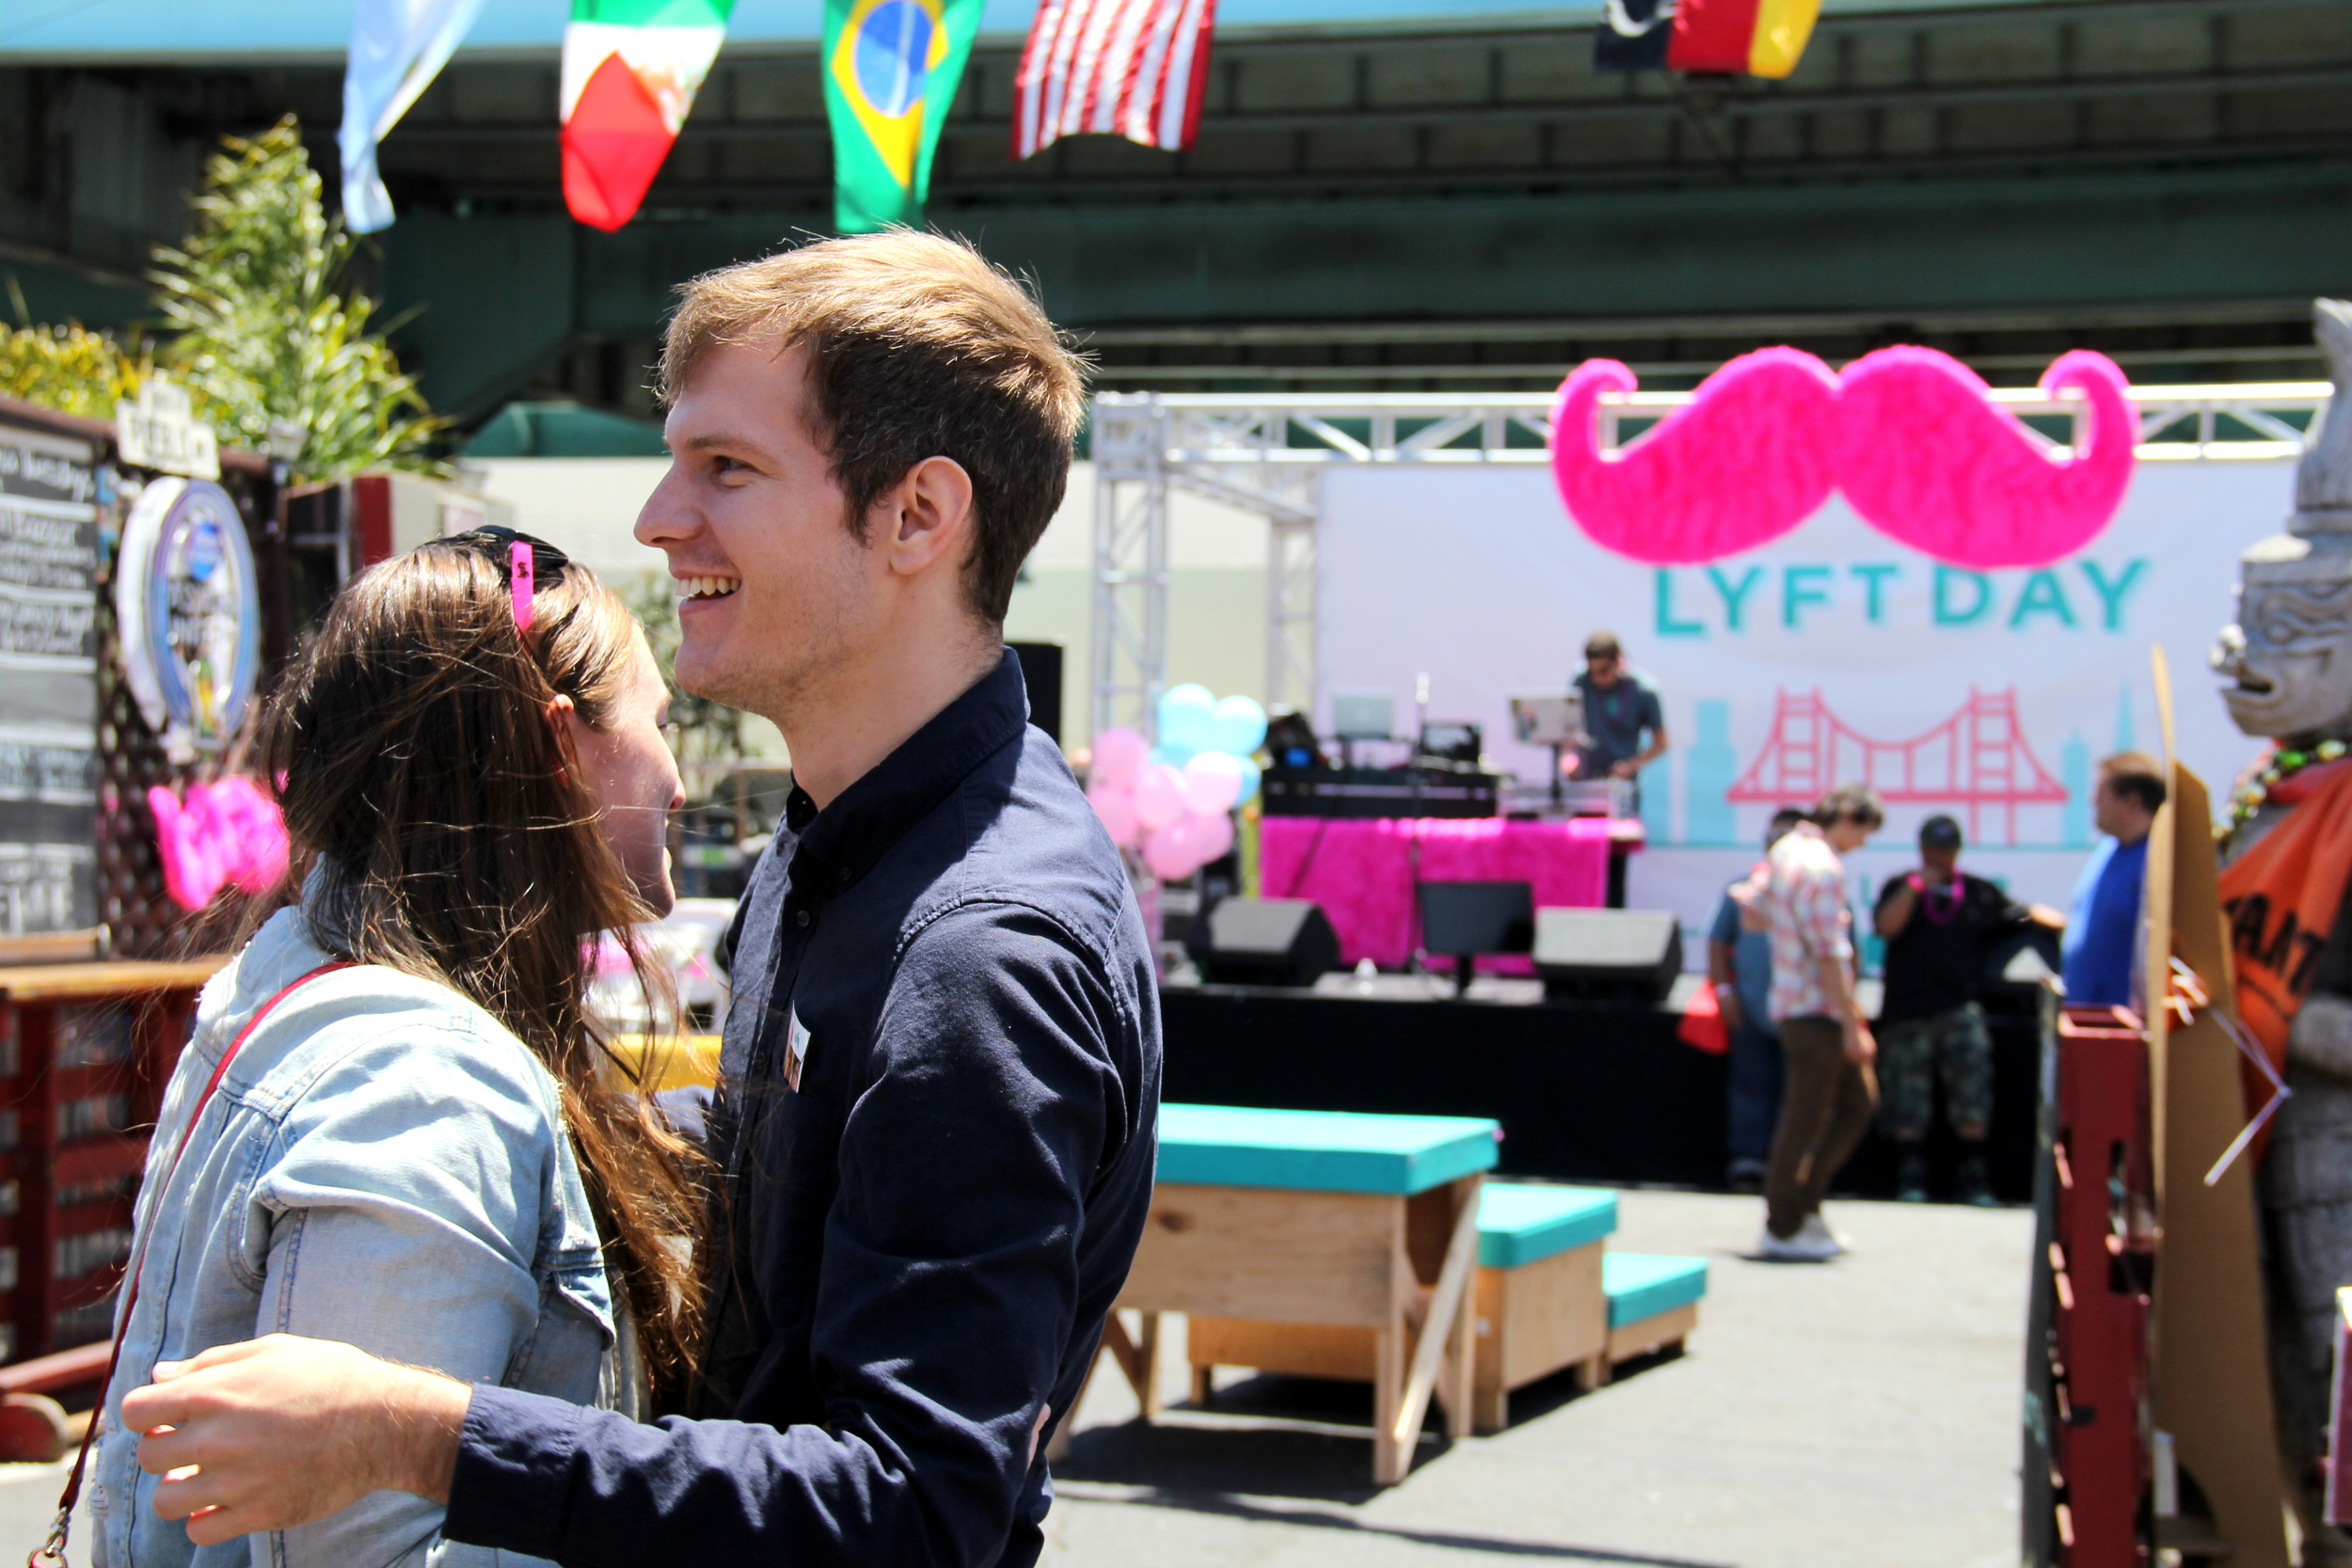 After the music ended and the crowds dispersed, there was still plenty of #LyftLove in the air.